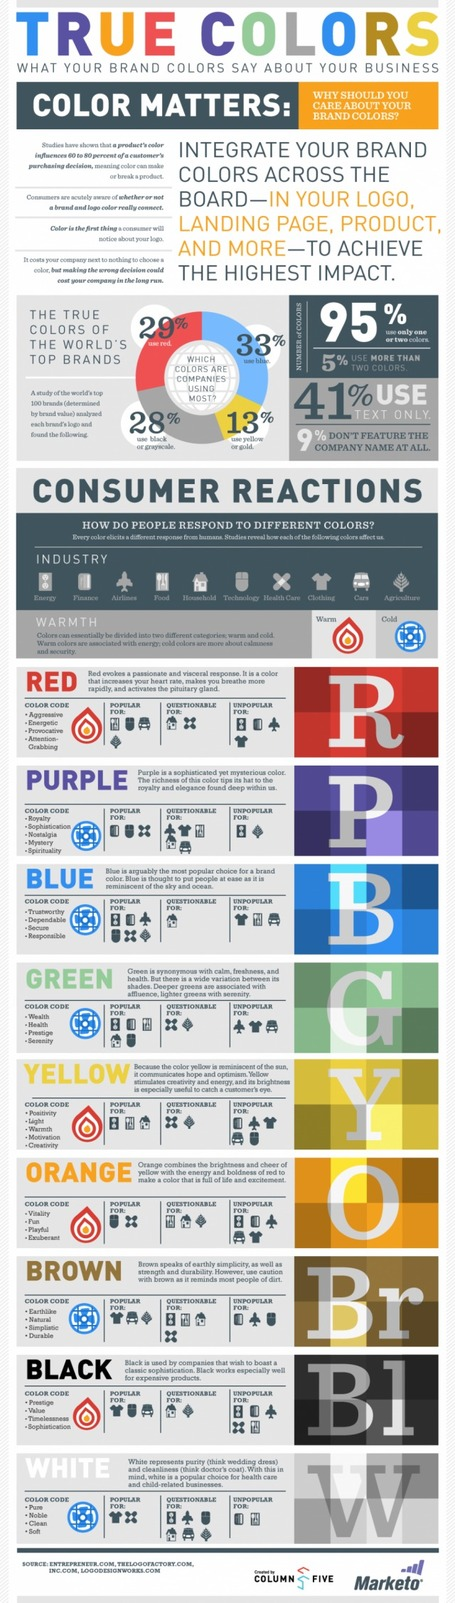 True Colors, Branded Colors | Digital Marketing Buzz | Scoop.it